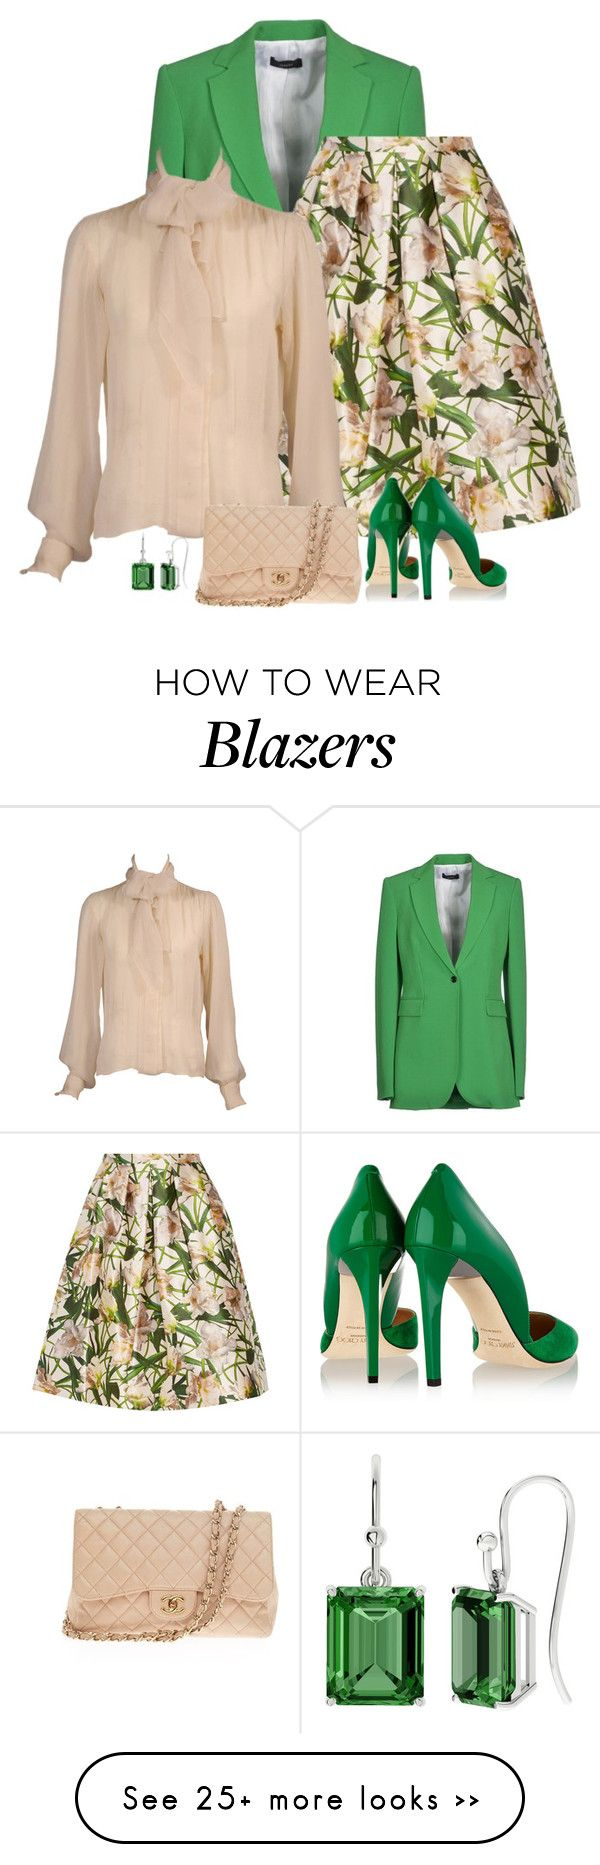 """floral skirt"" by divacrafts on Polyvore featuring Joseph, Oscar de la Renta, Yves Saint Laurent, Jimmy Choo, Chanel, StyleRocks and Original"